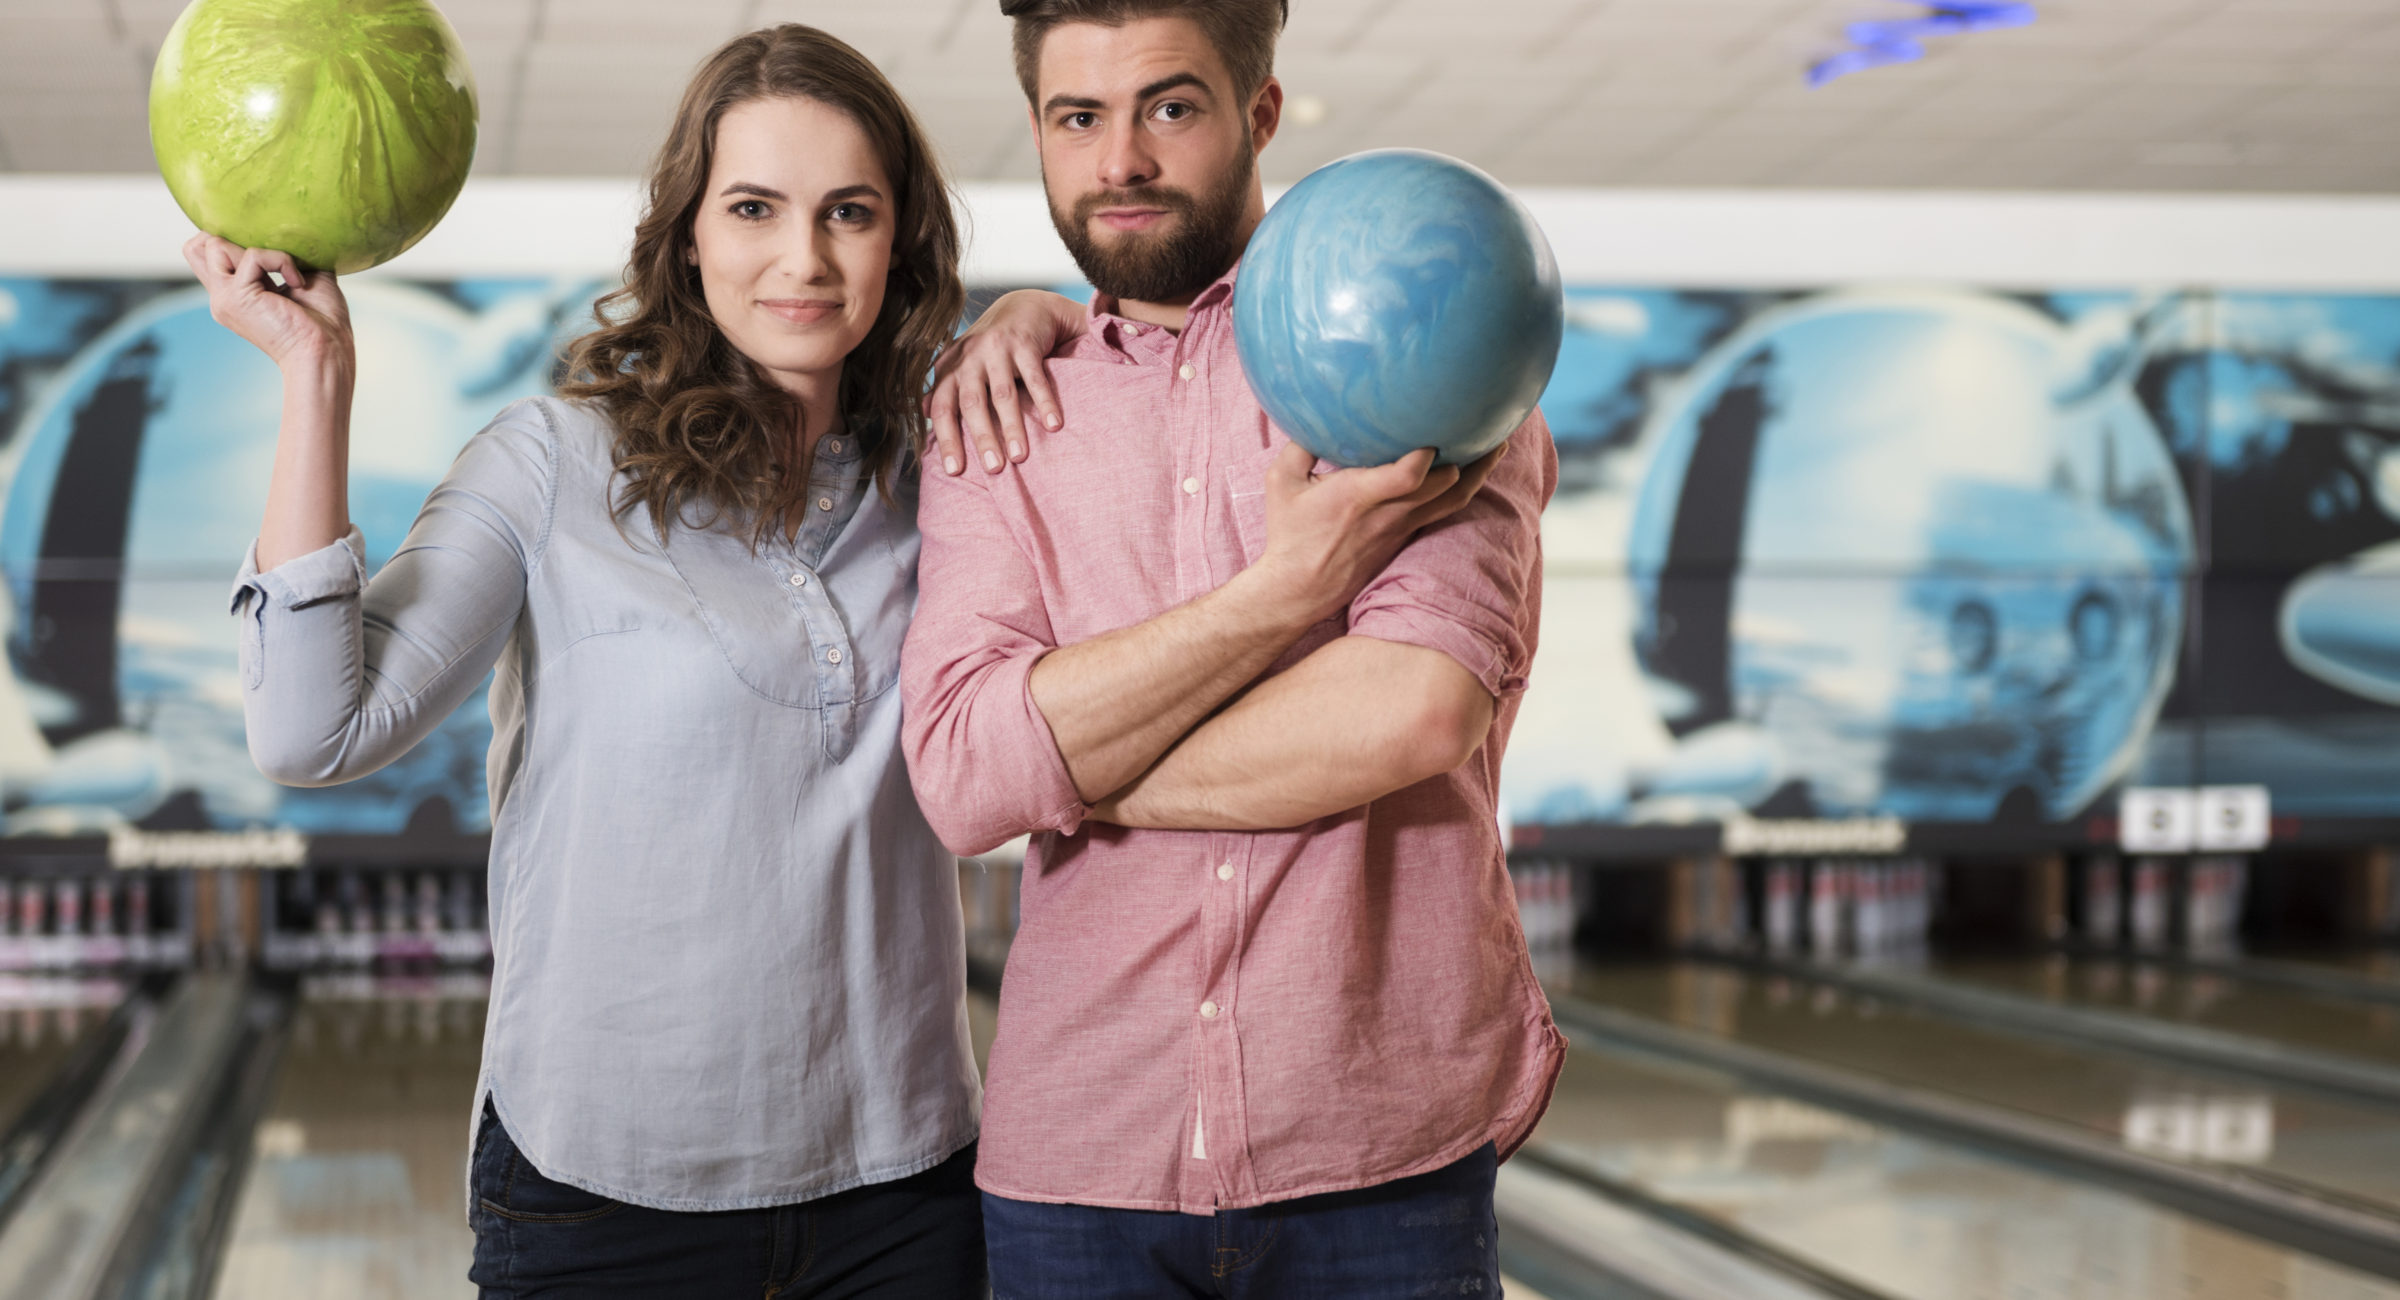 man and woman holding bowling balls at the lanes